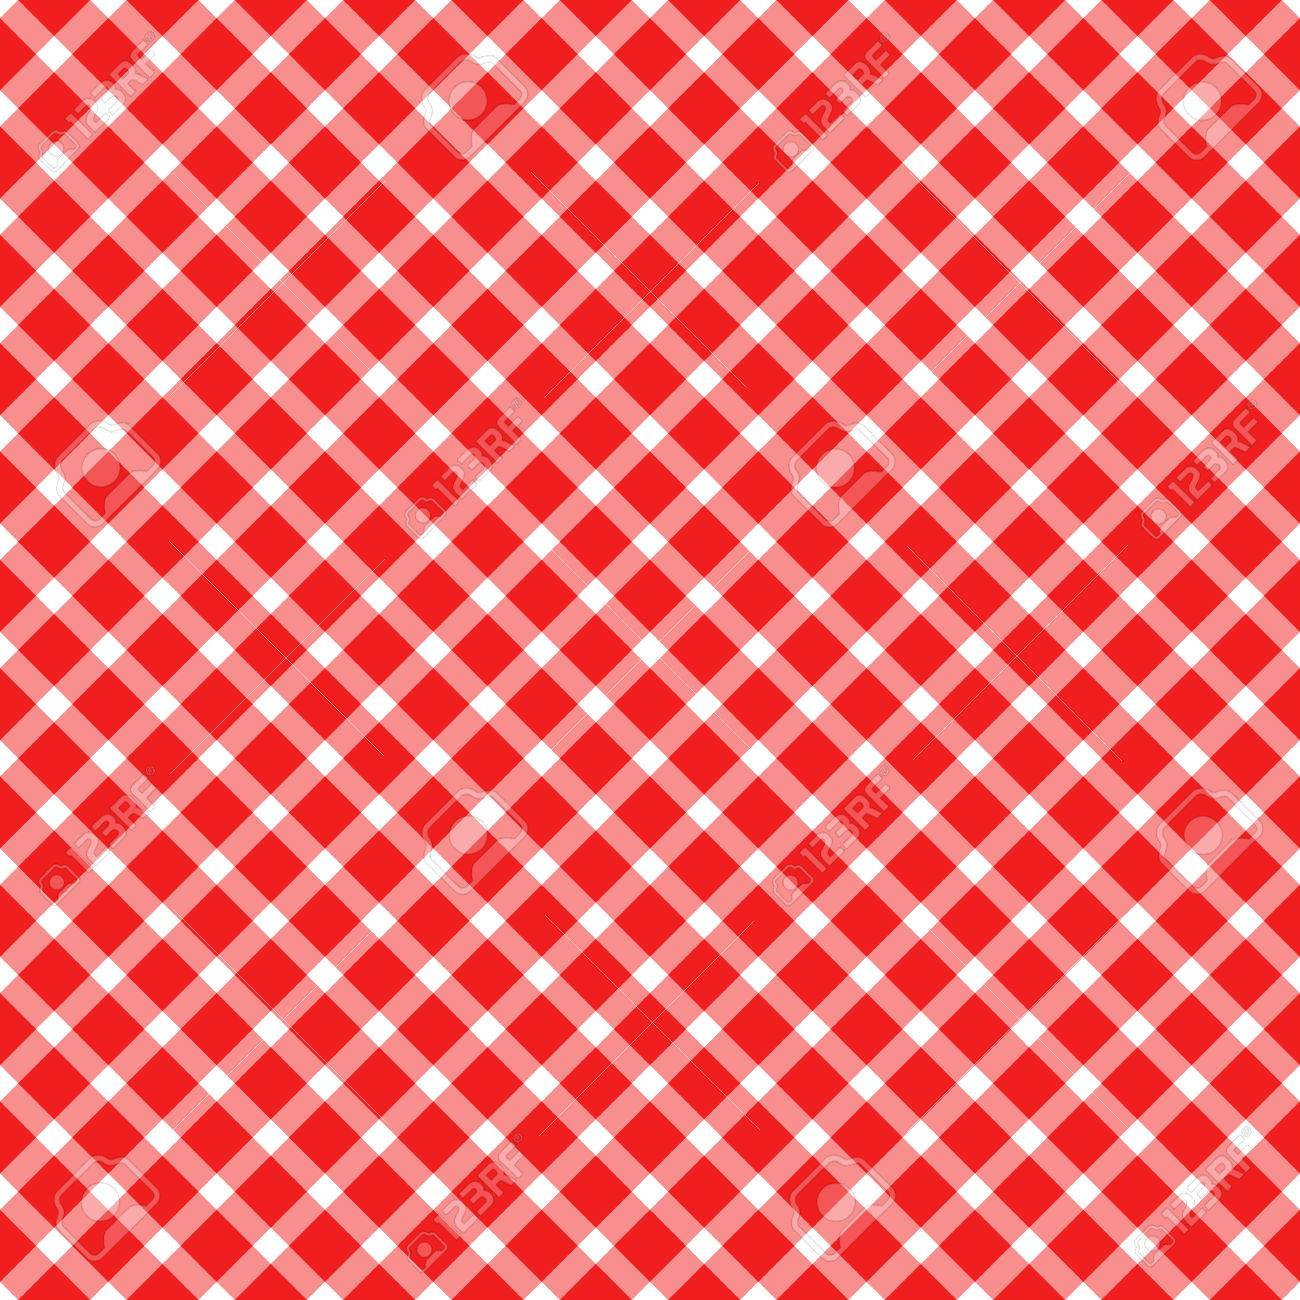 Seamless Red Colored Checkered Table Cloth Pattern For Background Design  Stock Vector   61049198